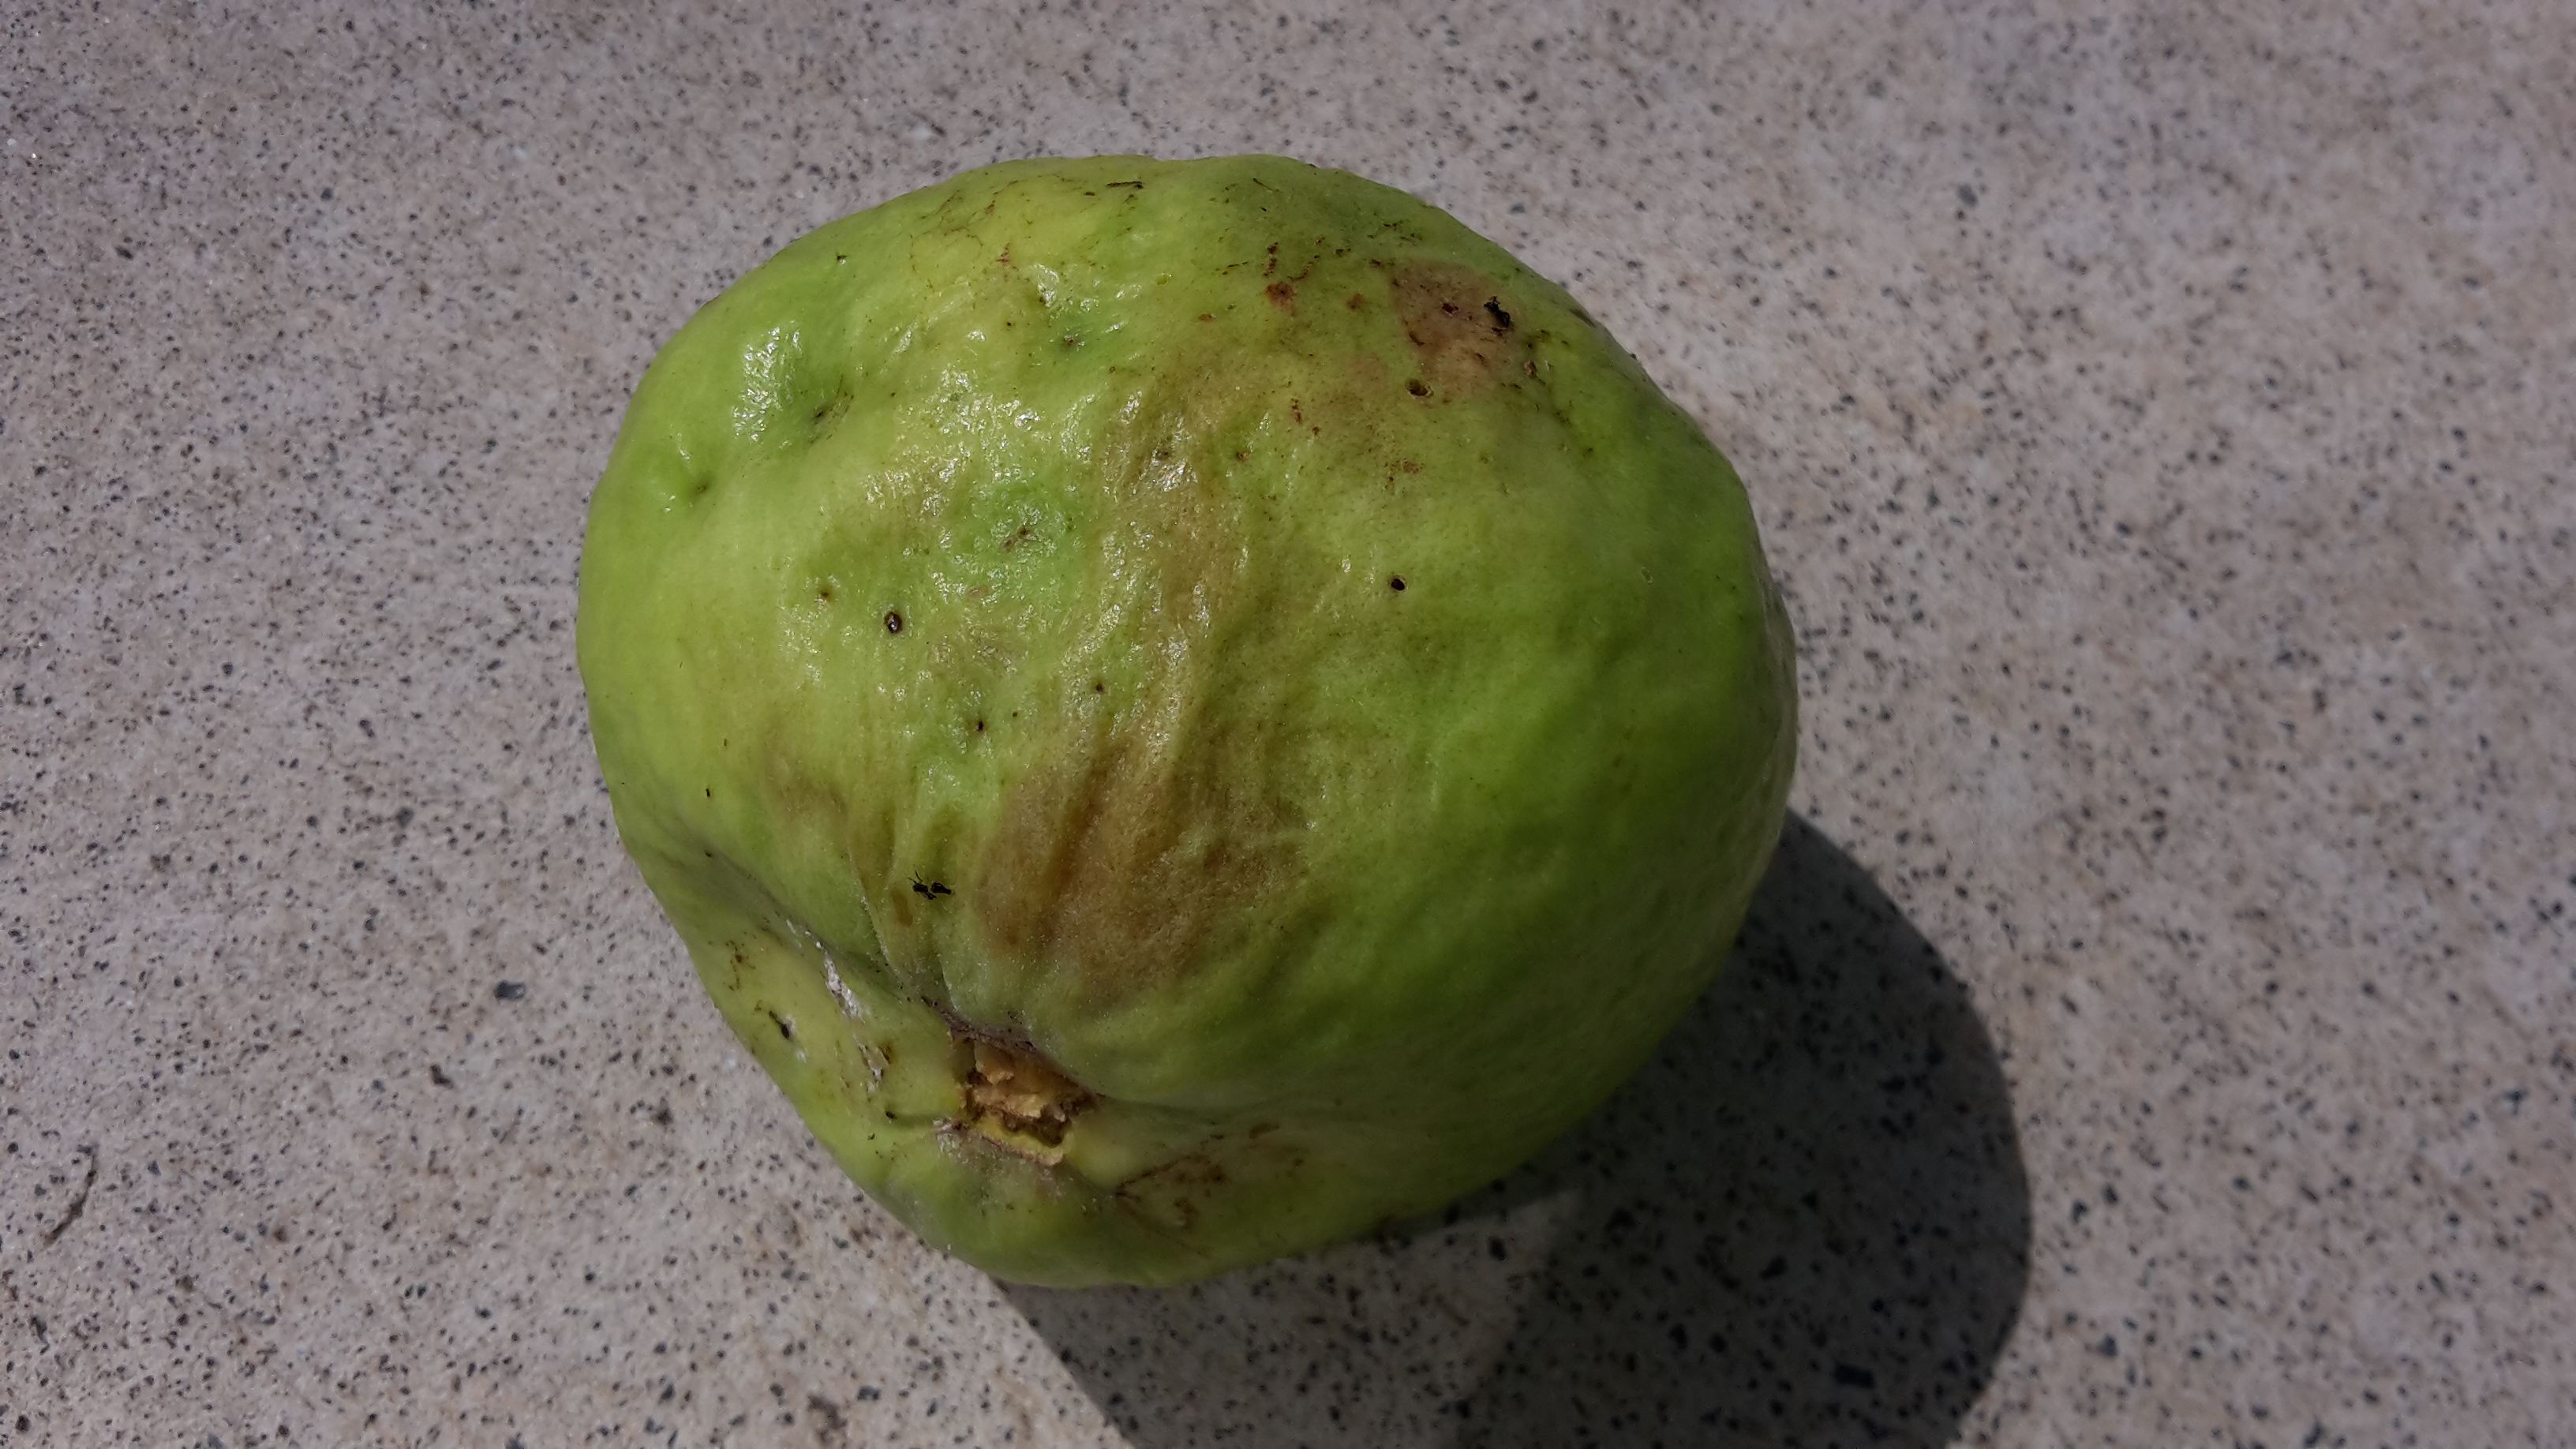 rotten guava fruit which has got mushy patch